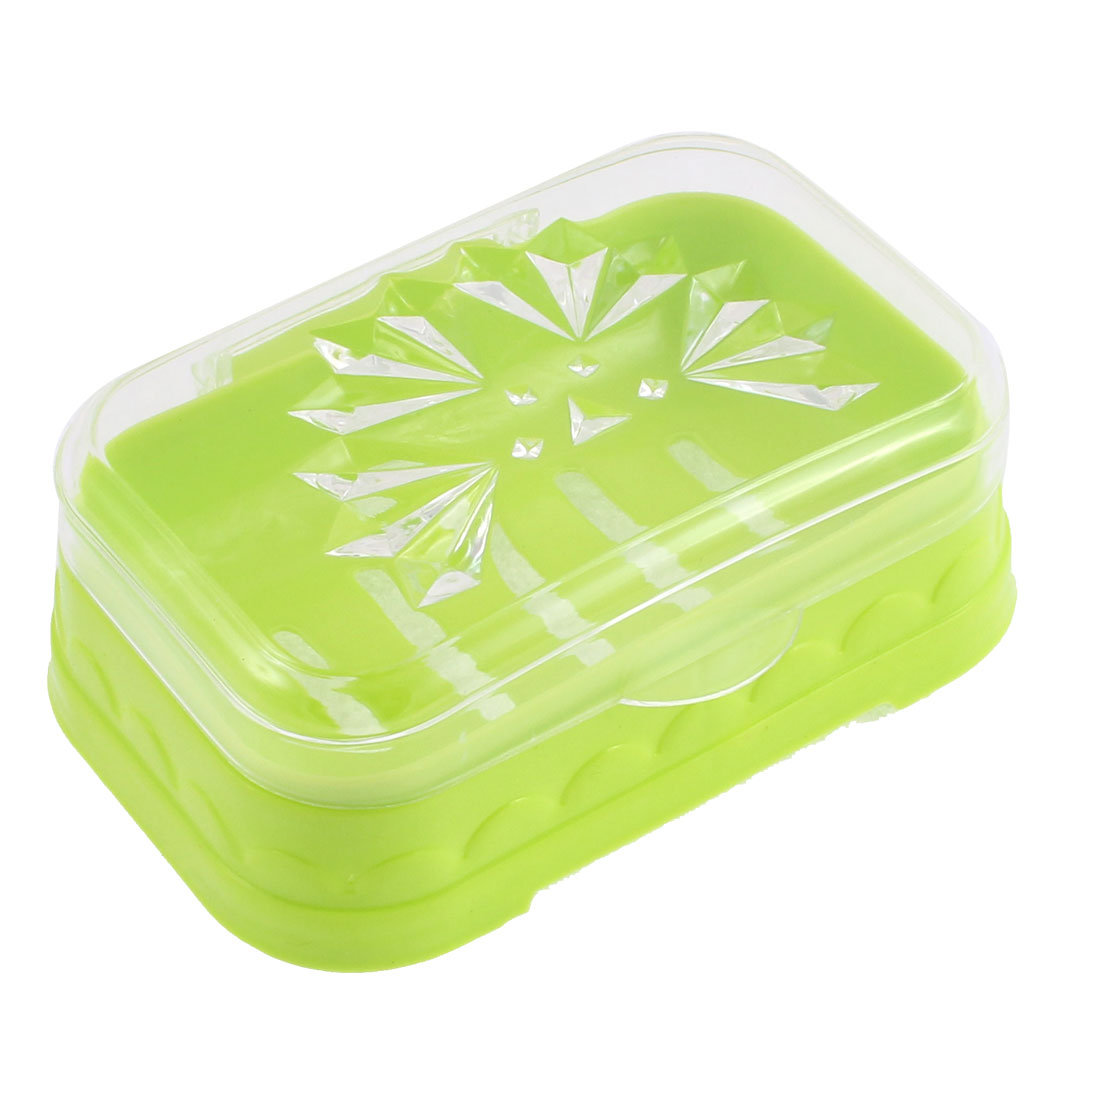 Travel Bathroom Portable Soap Dish Case Holder Box Clear Light Green